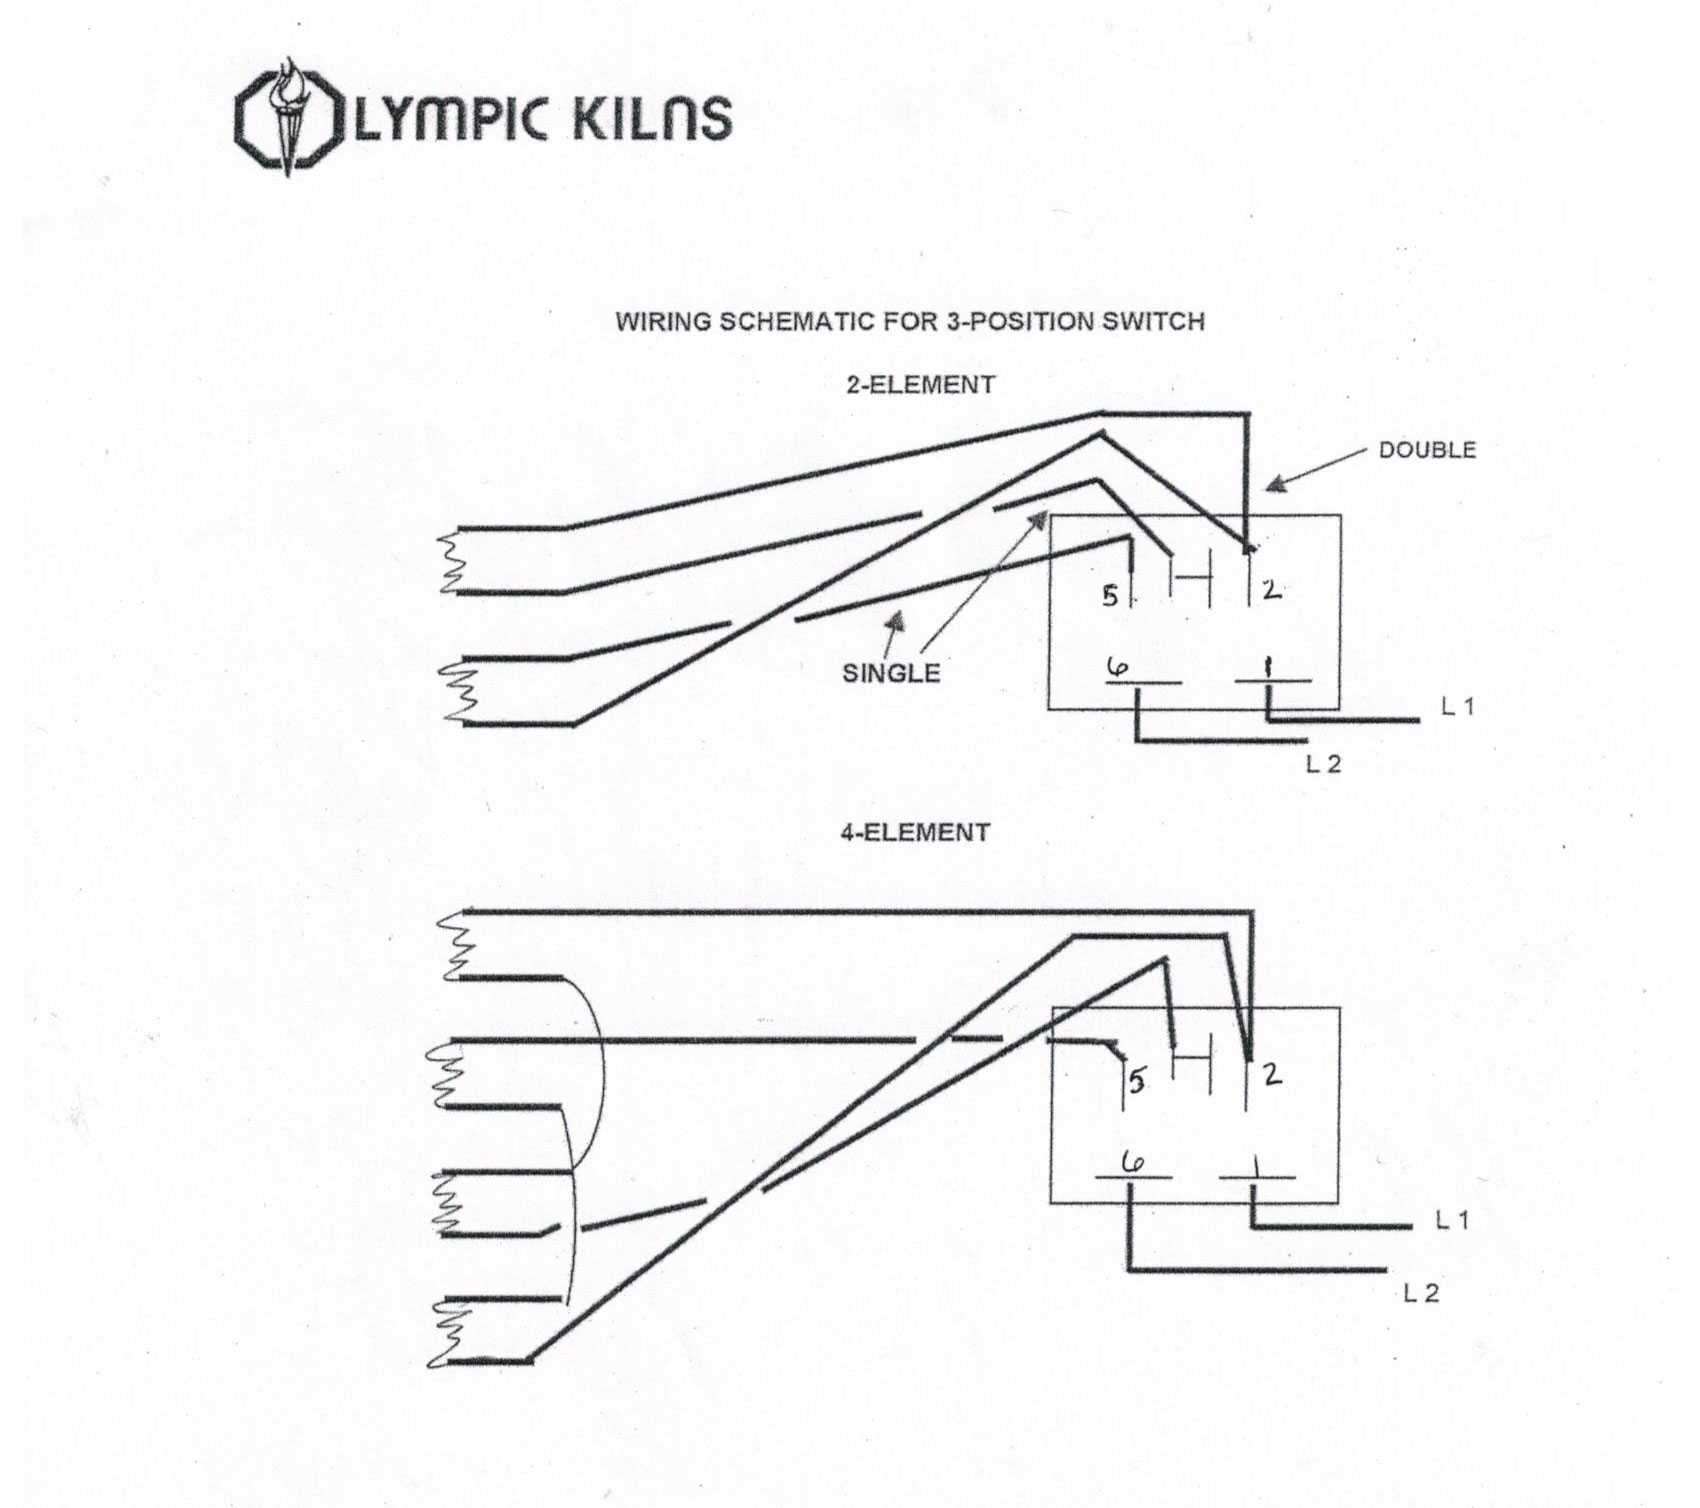 All Generic Kiln Parts Of High Quality Position Switch Wiring Diagram 3 120v 240v Schematic